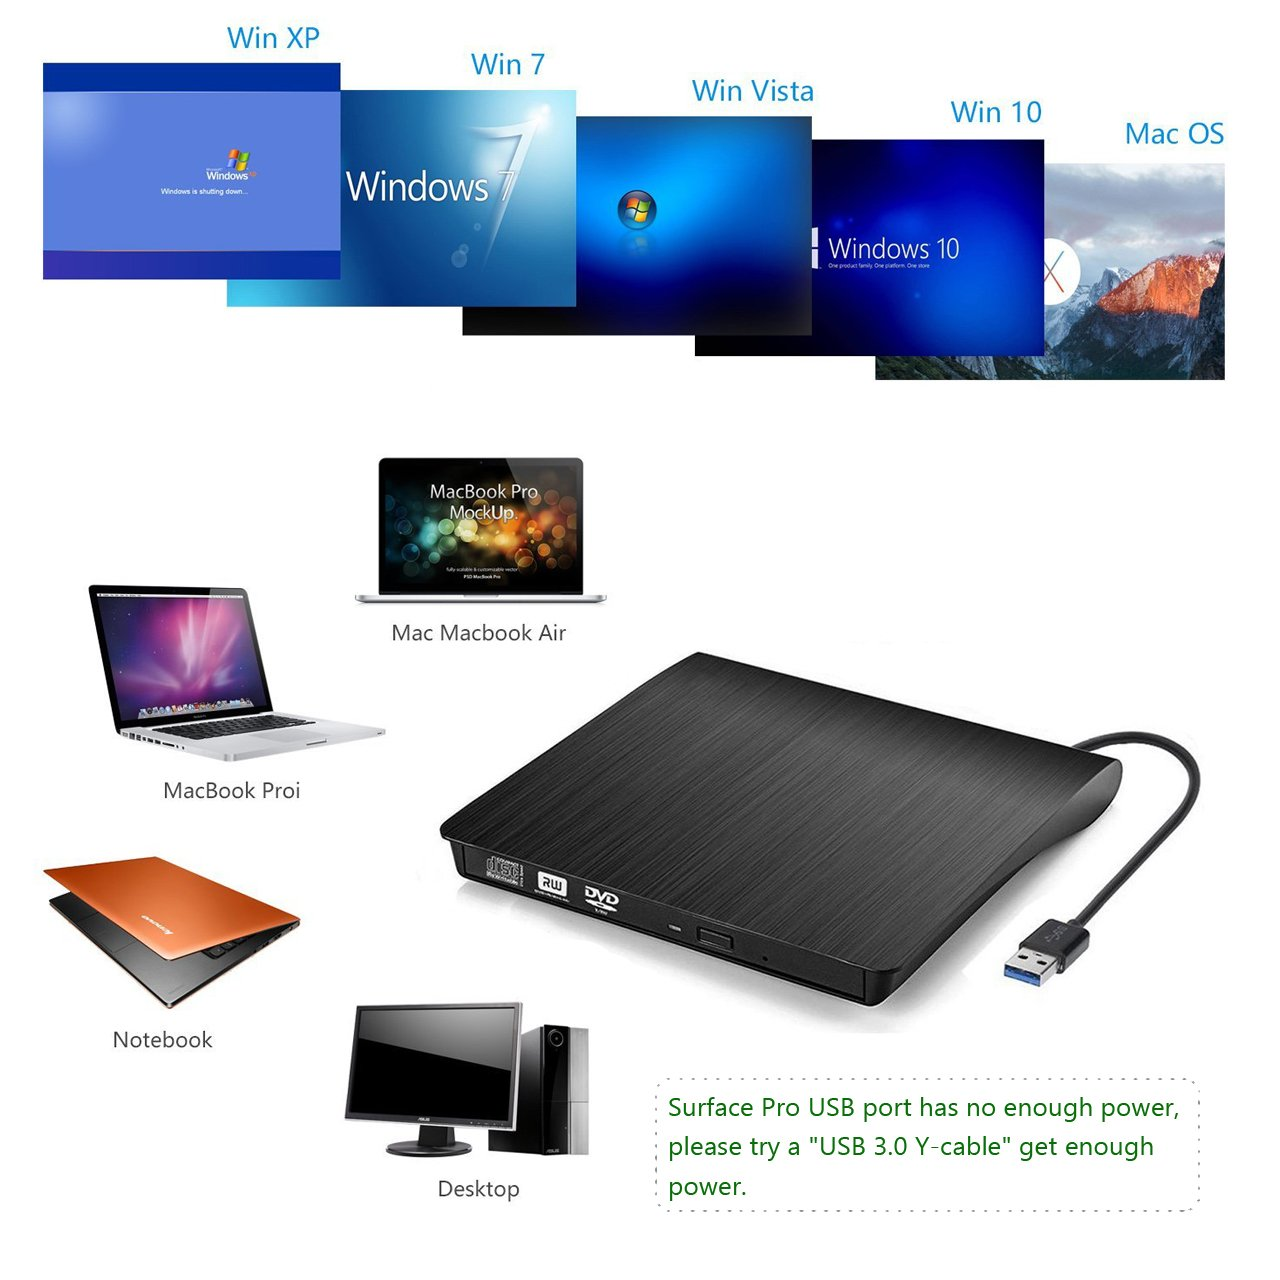 External CD Drive, Devancy Ultra-Slim USB 3.0 External DVD Drive, CD/DVD-RW Drive, DVD/CD Rom Rewriter Burner Writer, High Speed Data Transfer for Laptop Desktops Win 7, 8, 10, Mac OS and Linux OS by Devancy (Image #5)